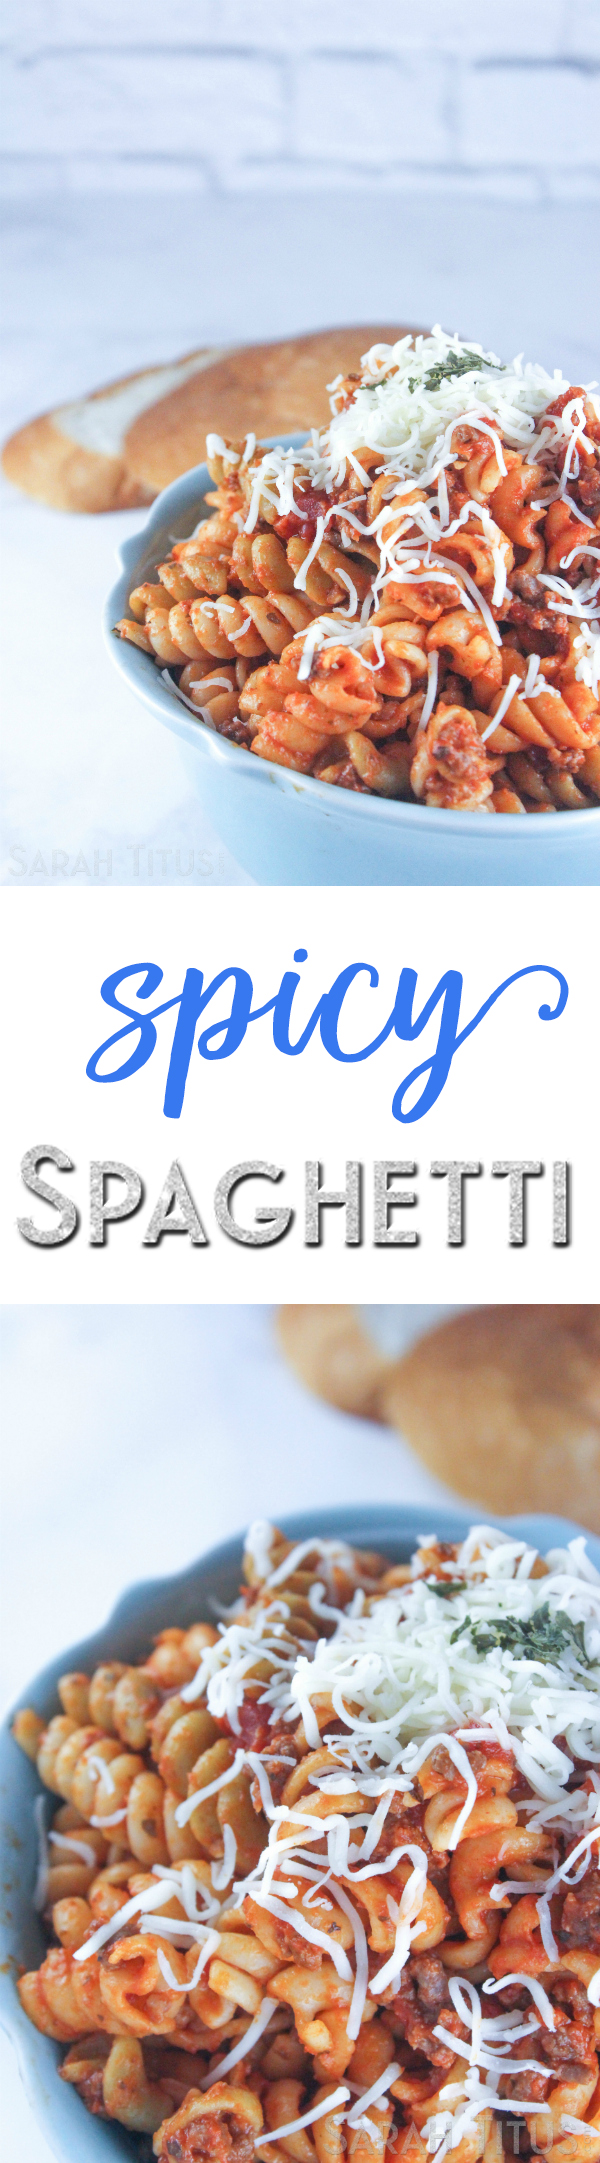 After everyone tastes my Spicy Spaghetti, hands down, every single person has agreed, it's the best they've ever had! Today I'm sharing my family secret!